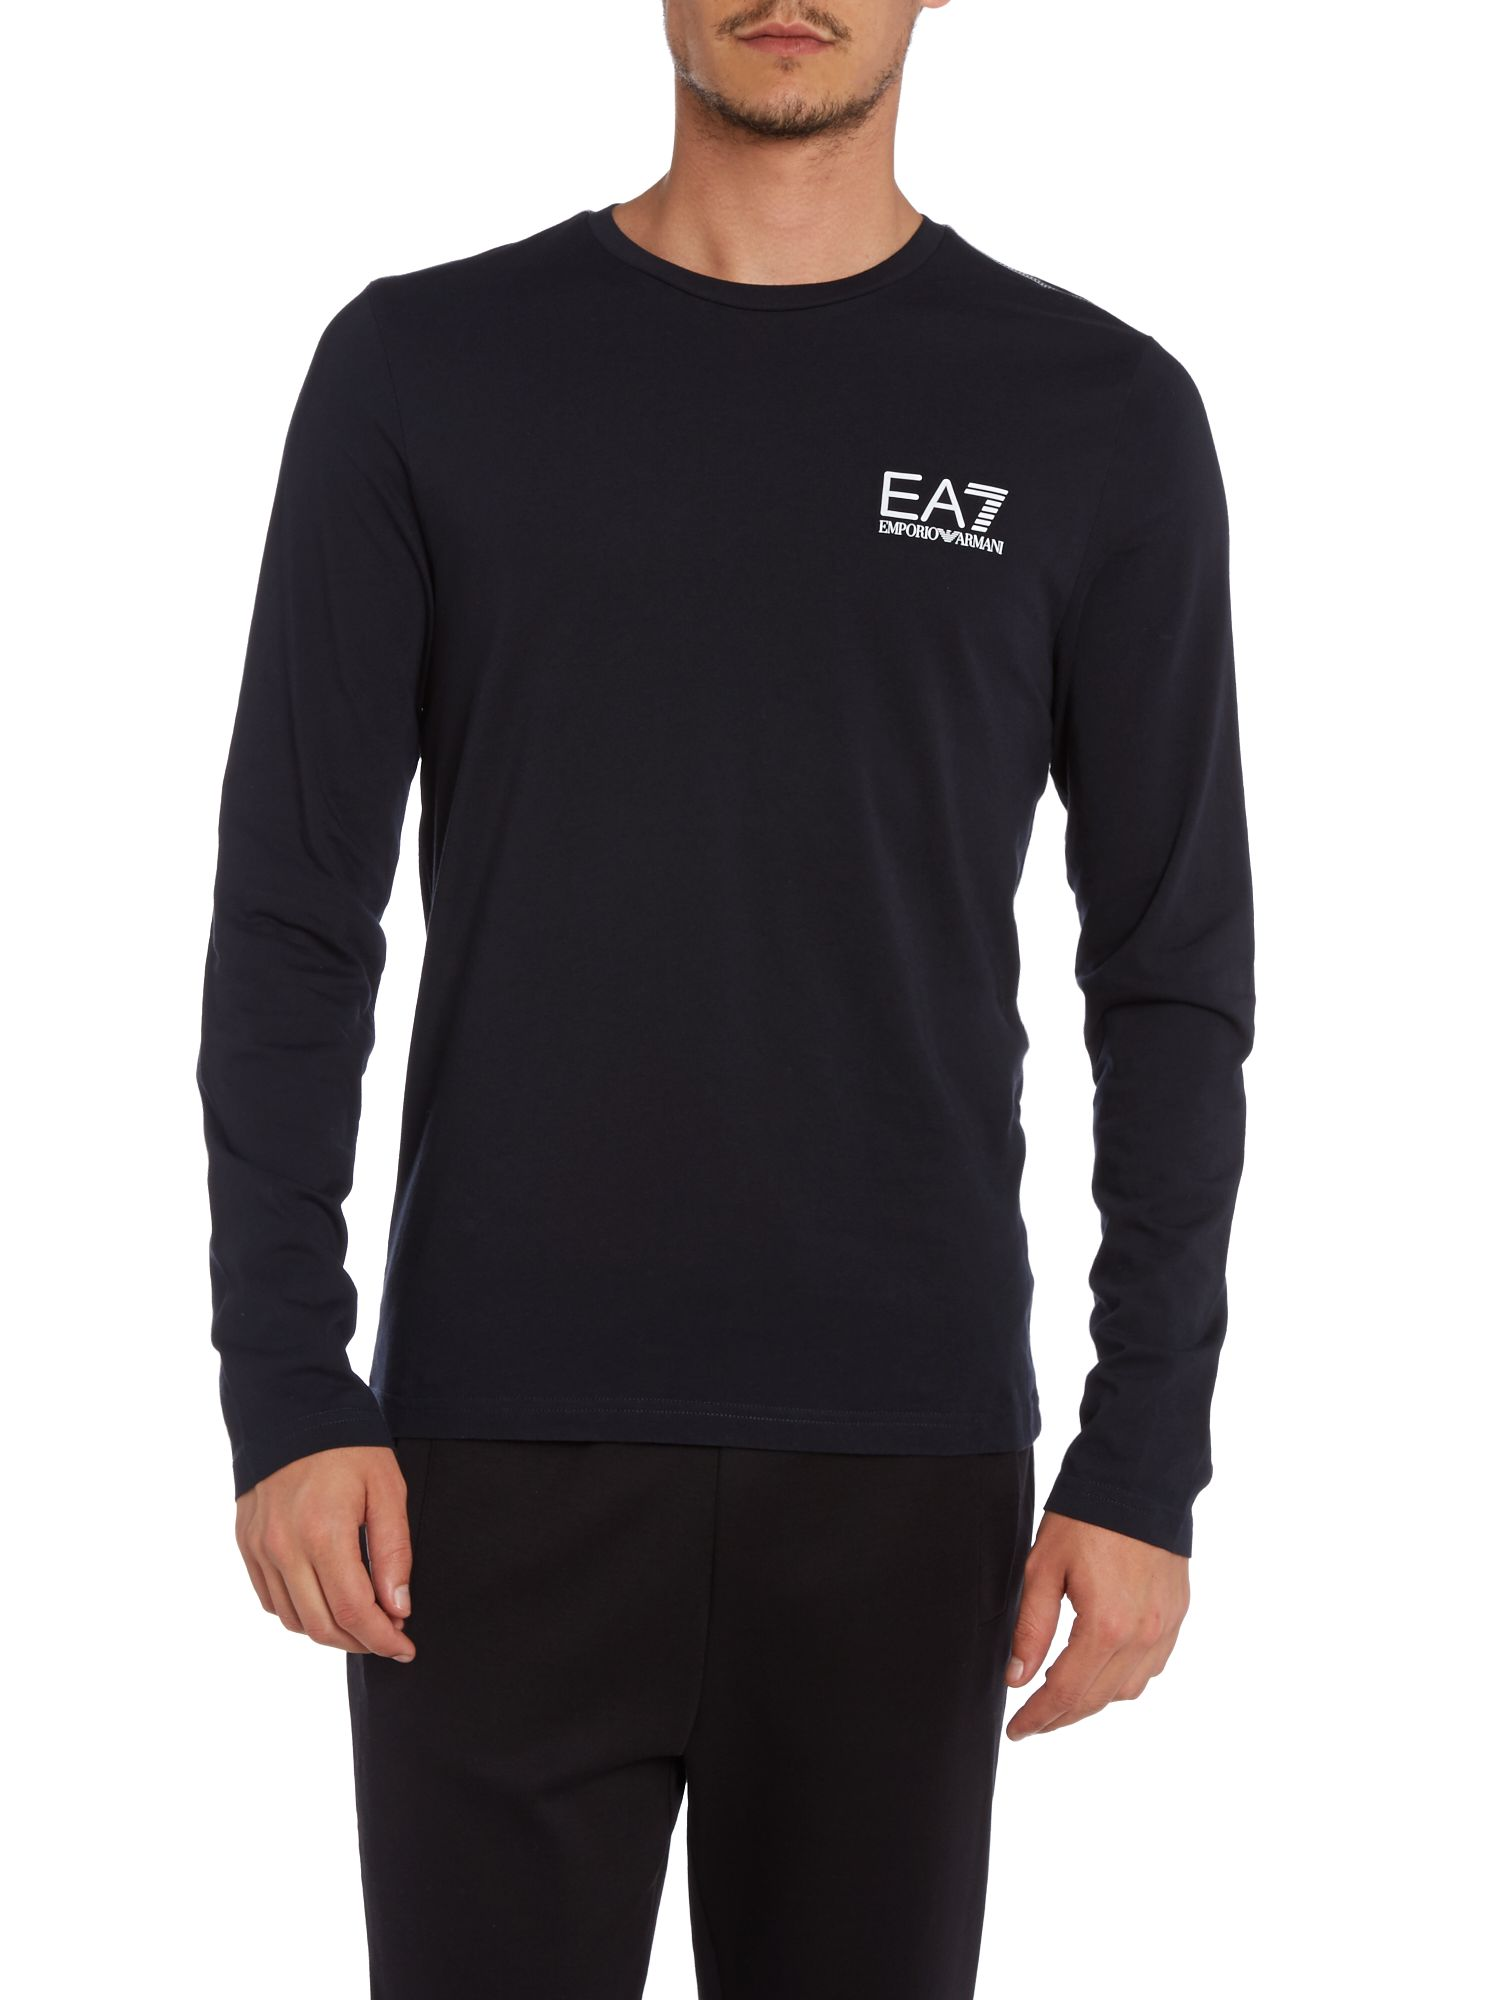 Core id long sleeve tshirt